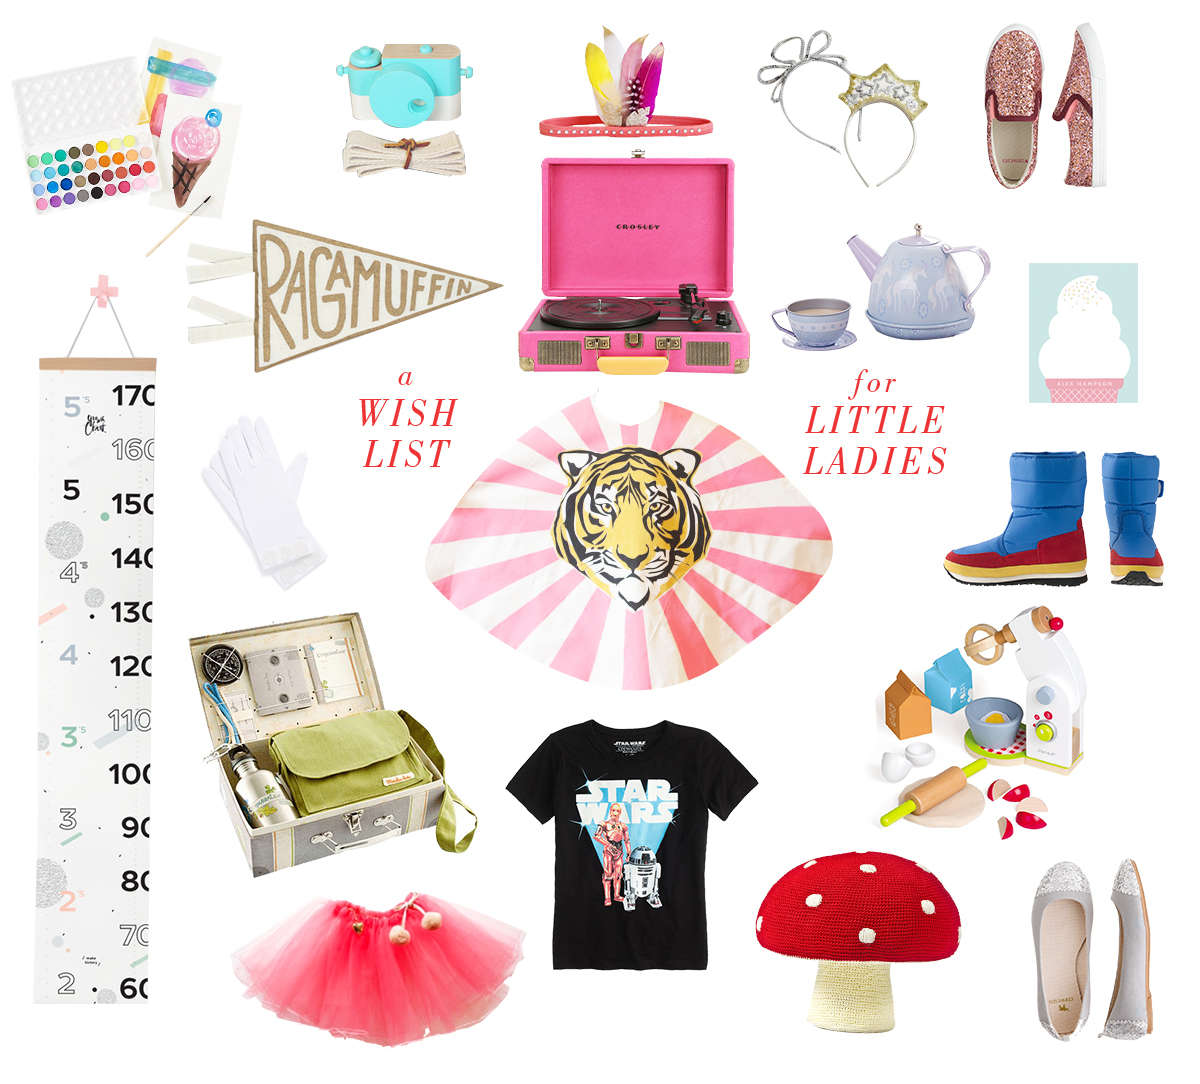 Things To Ask For Christmas.A Wish List For Little Ladies Lay Baby Lay